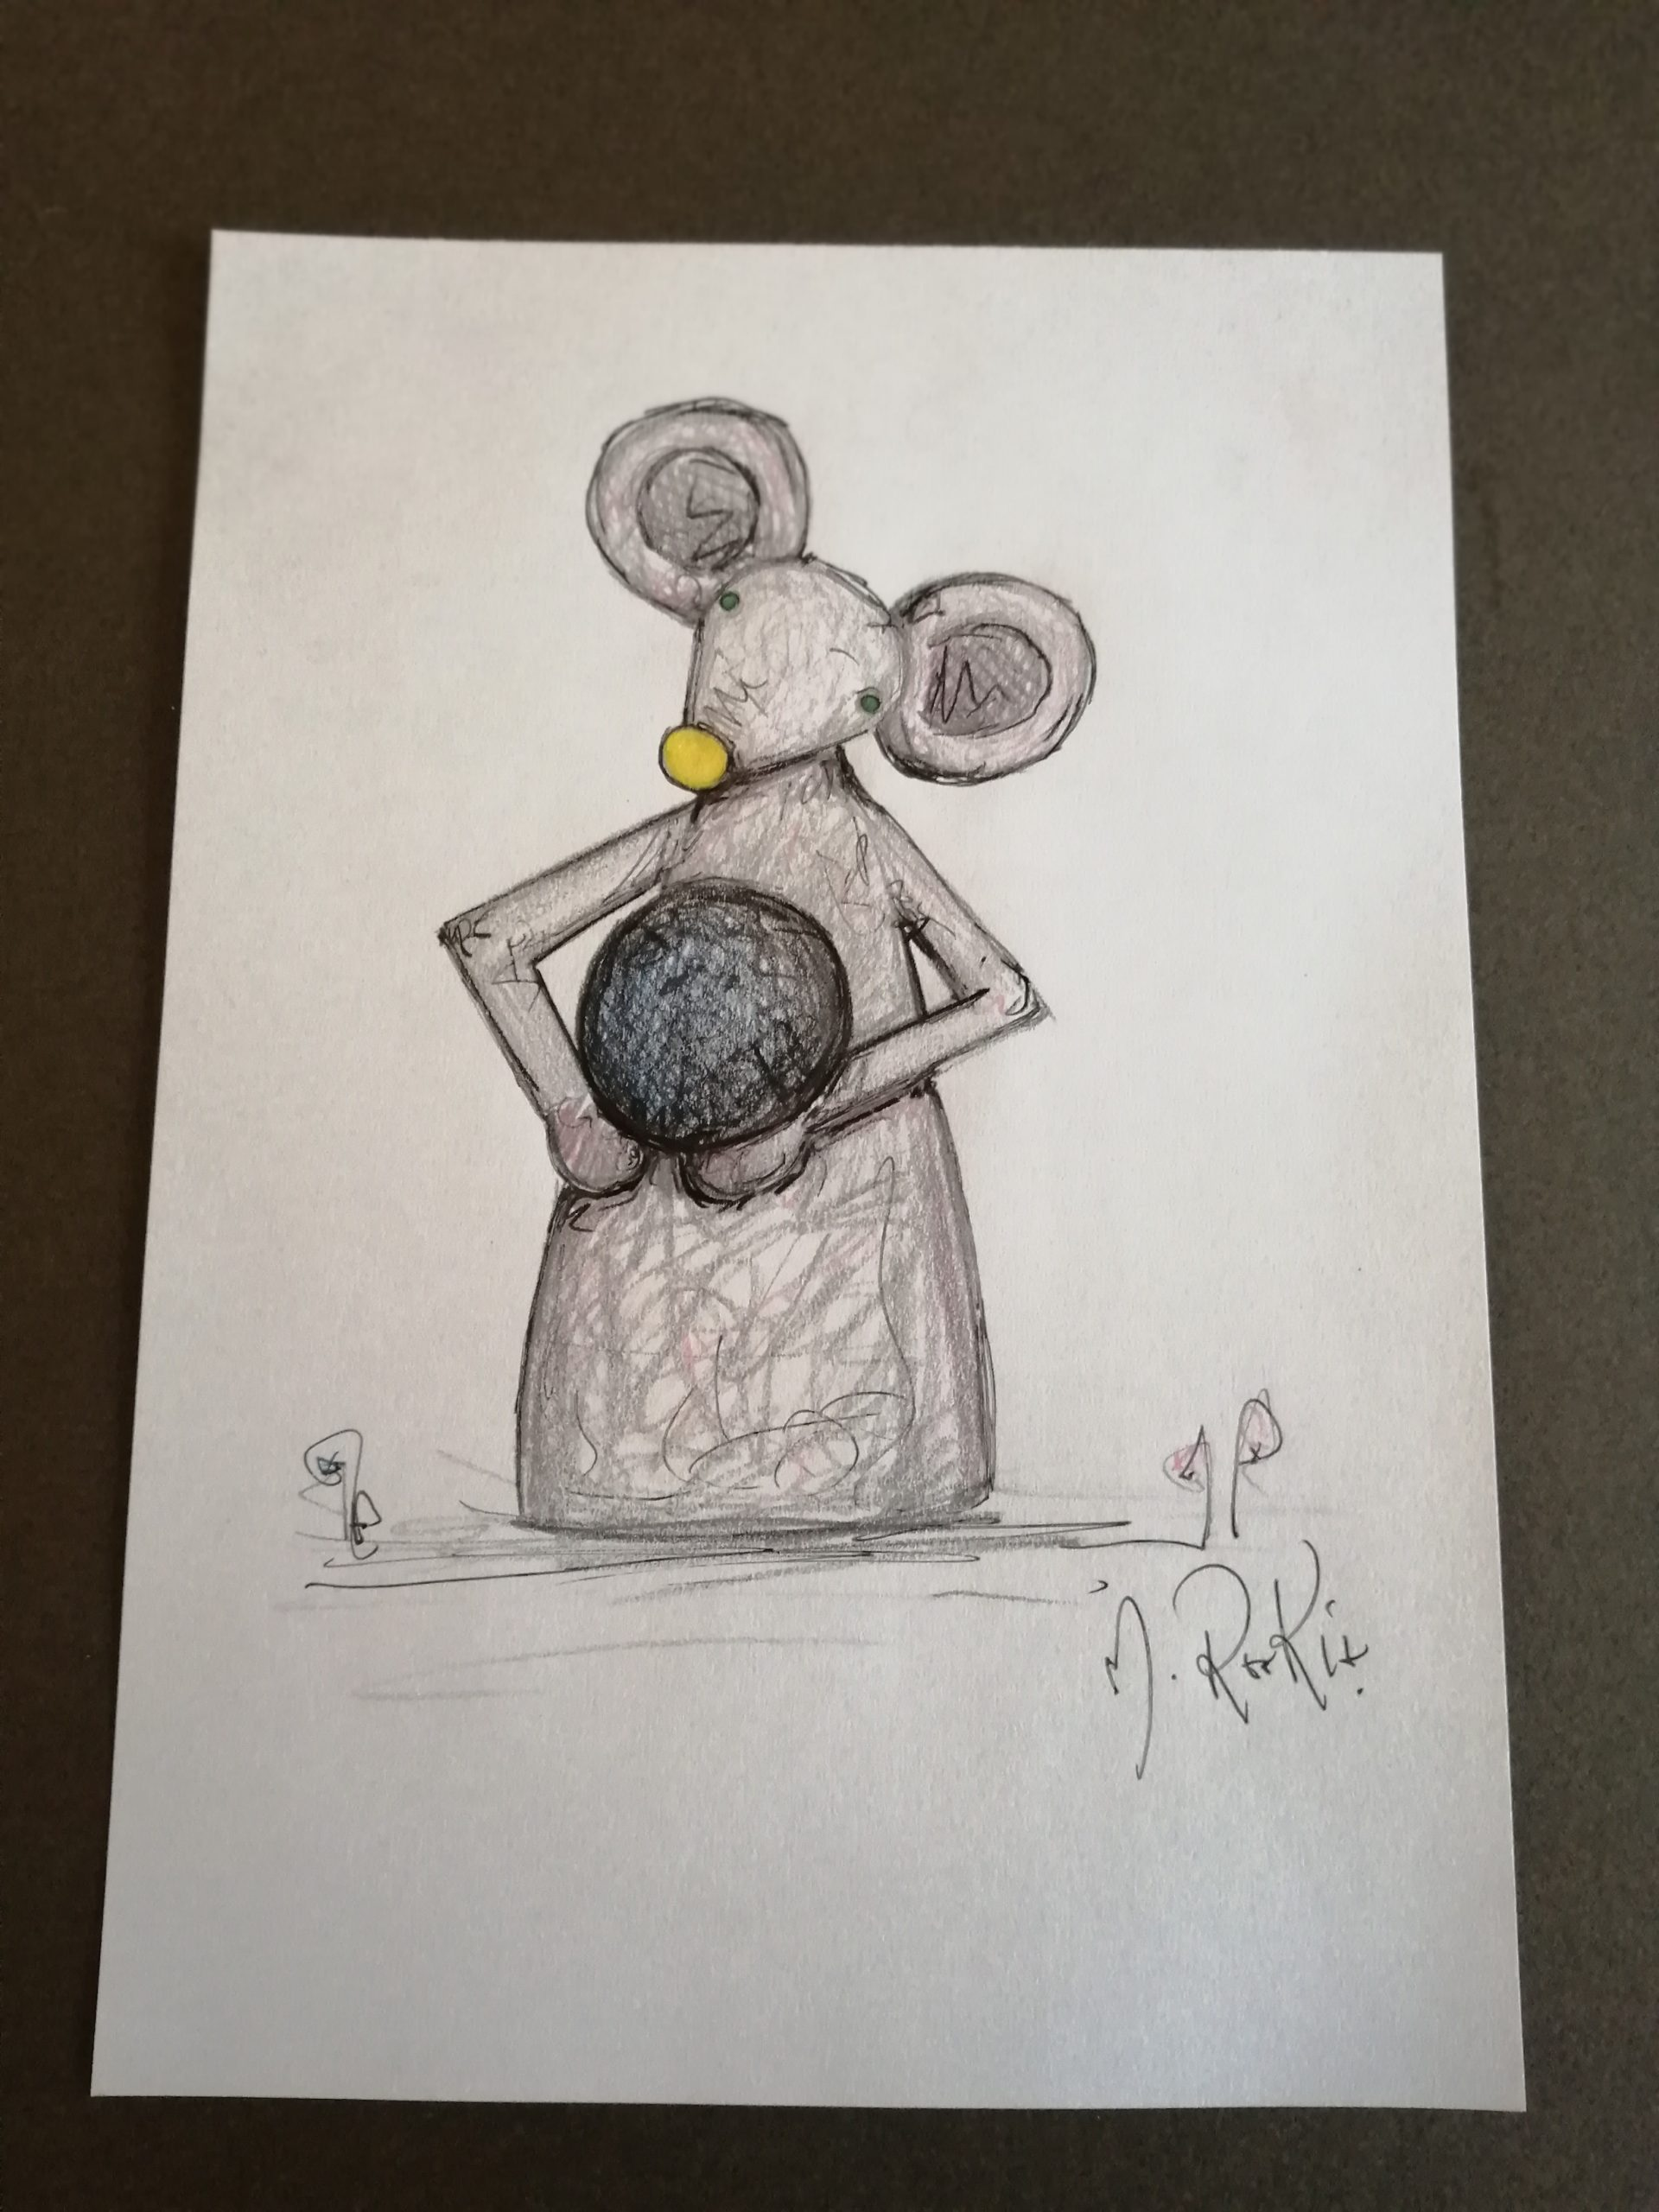 Sketch 'Grey Mouse Holding Pebble